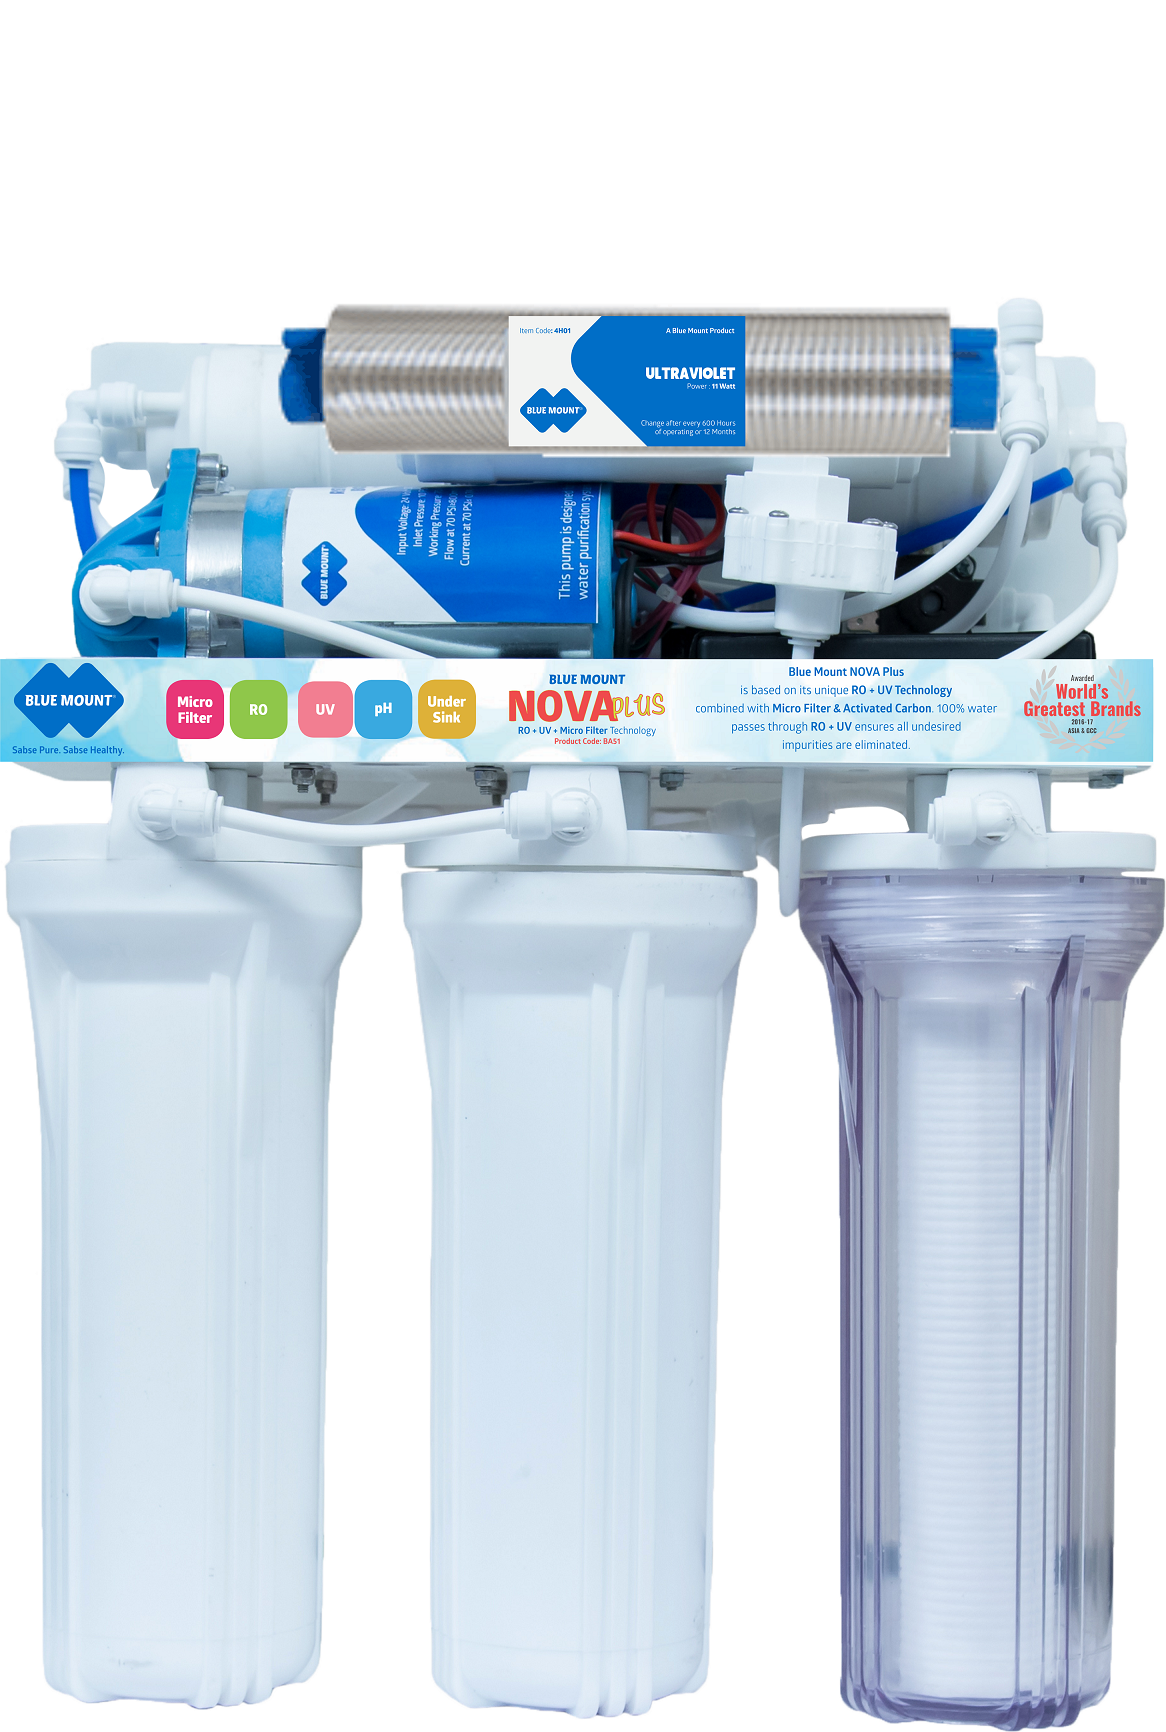 Blue Mount NOVA Plus Alkaline RO + UV Water Purifier